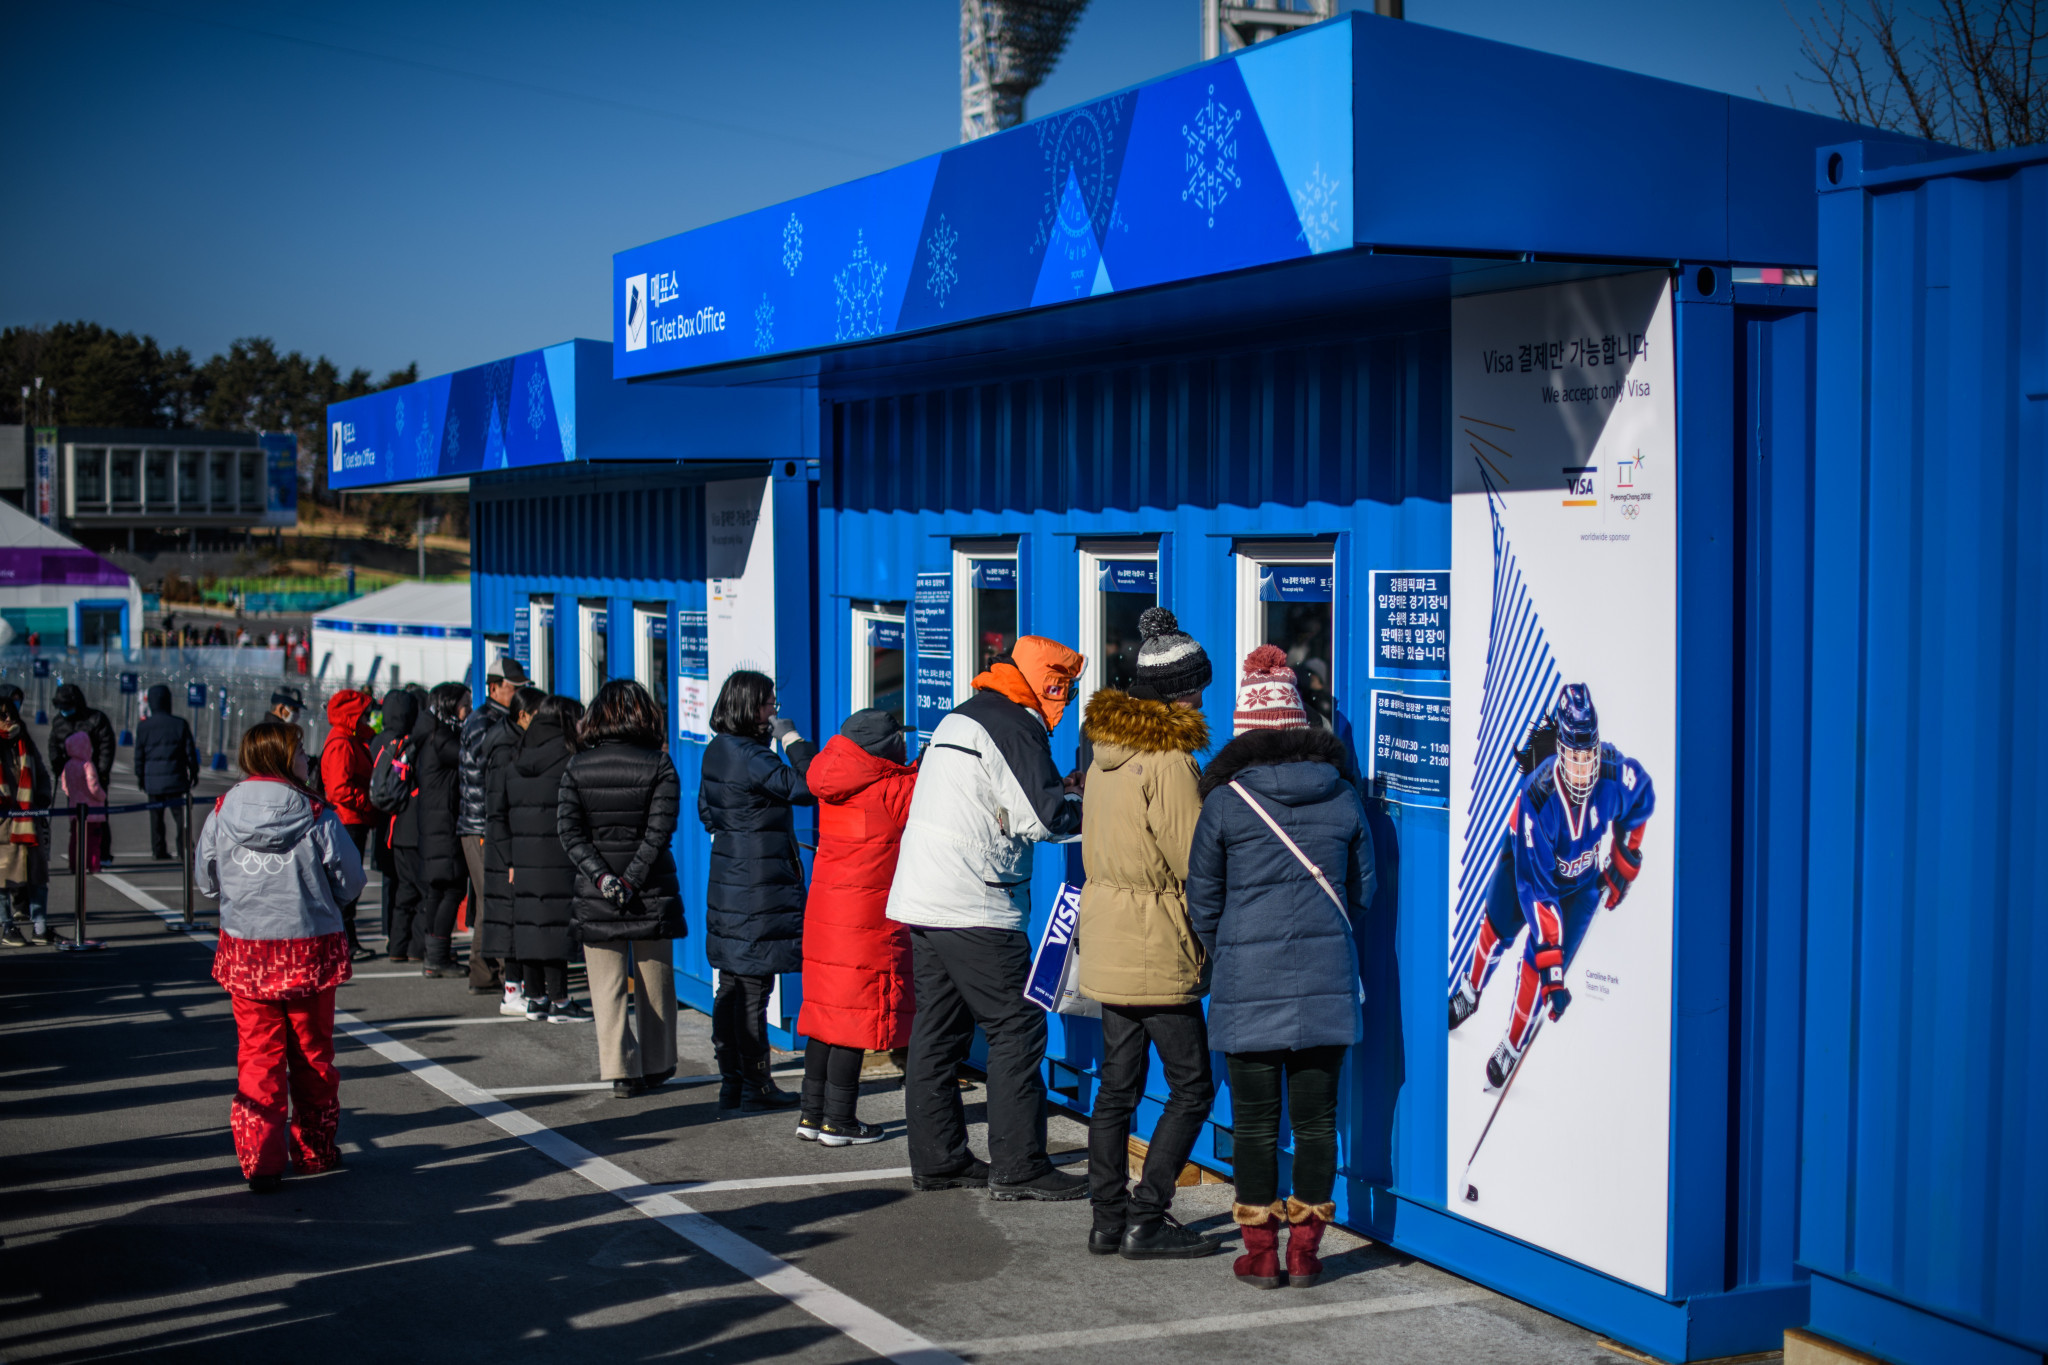 Ticket sales for the Pyeongchang 2018 Winter Paralympics could break the Games record set at Sochi 2014